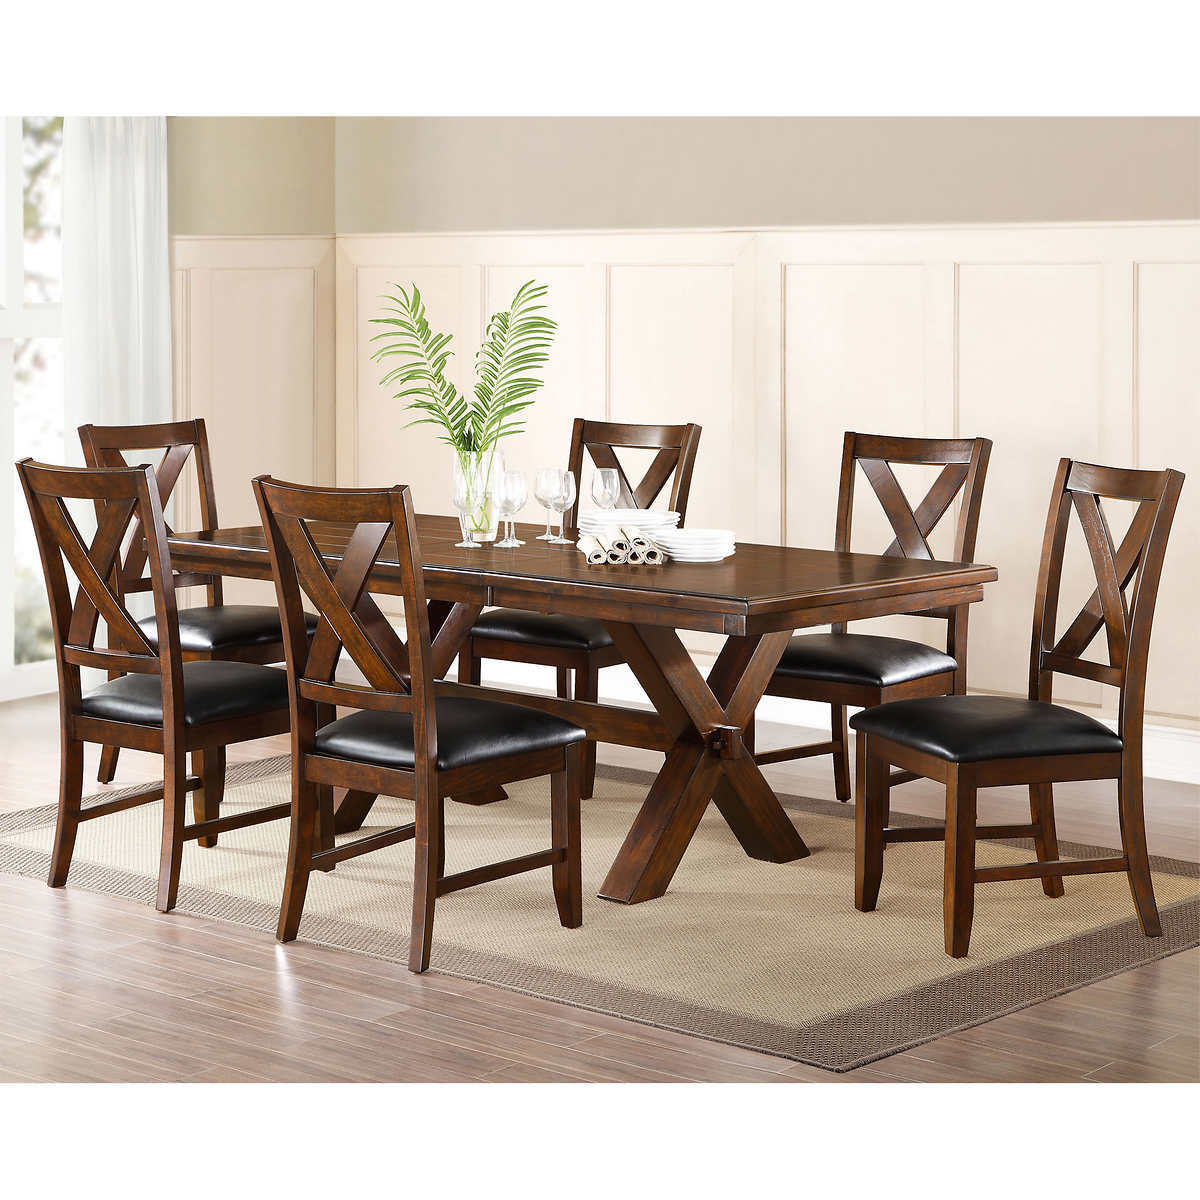 Bayside Furnishings Dining & Kitchen Furniture | Costco